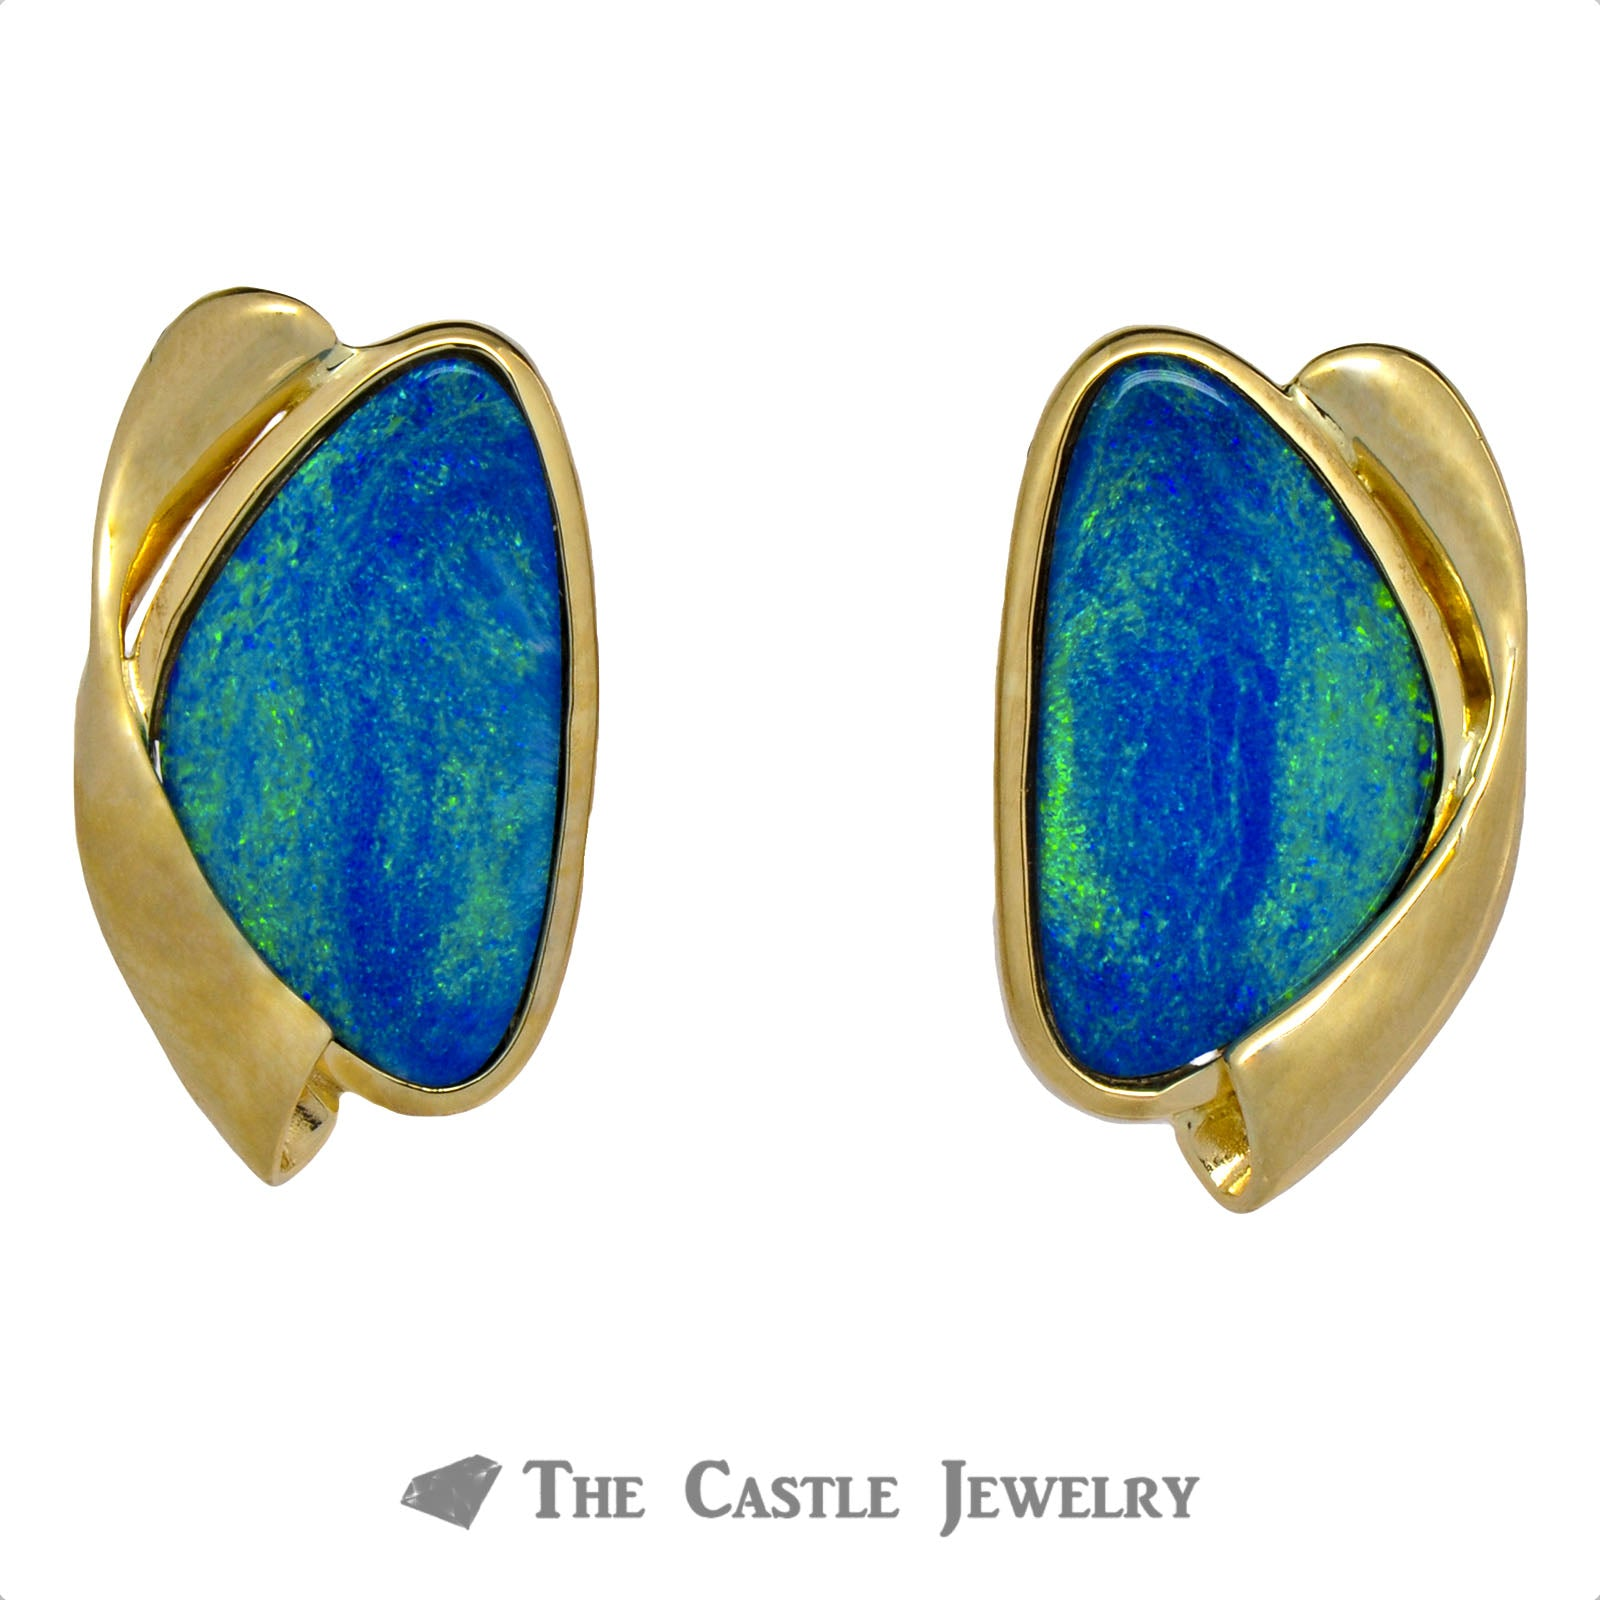 Stunning Black Opal Earrings with Twisted Hollow Gold Design-0